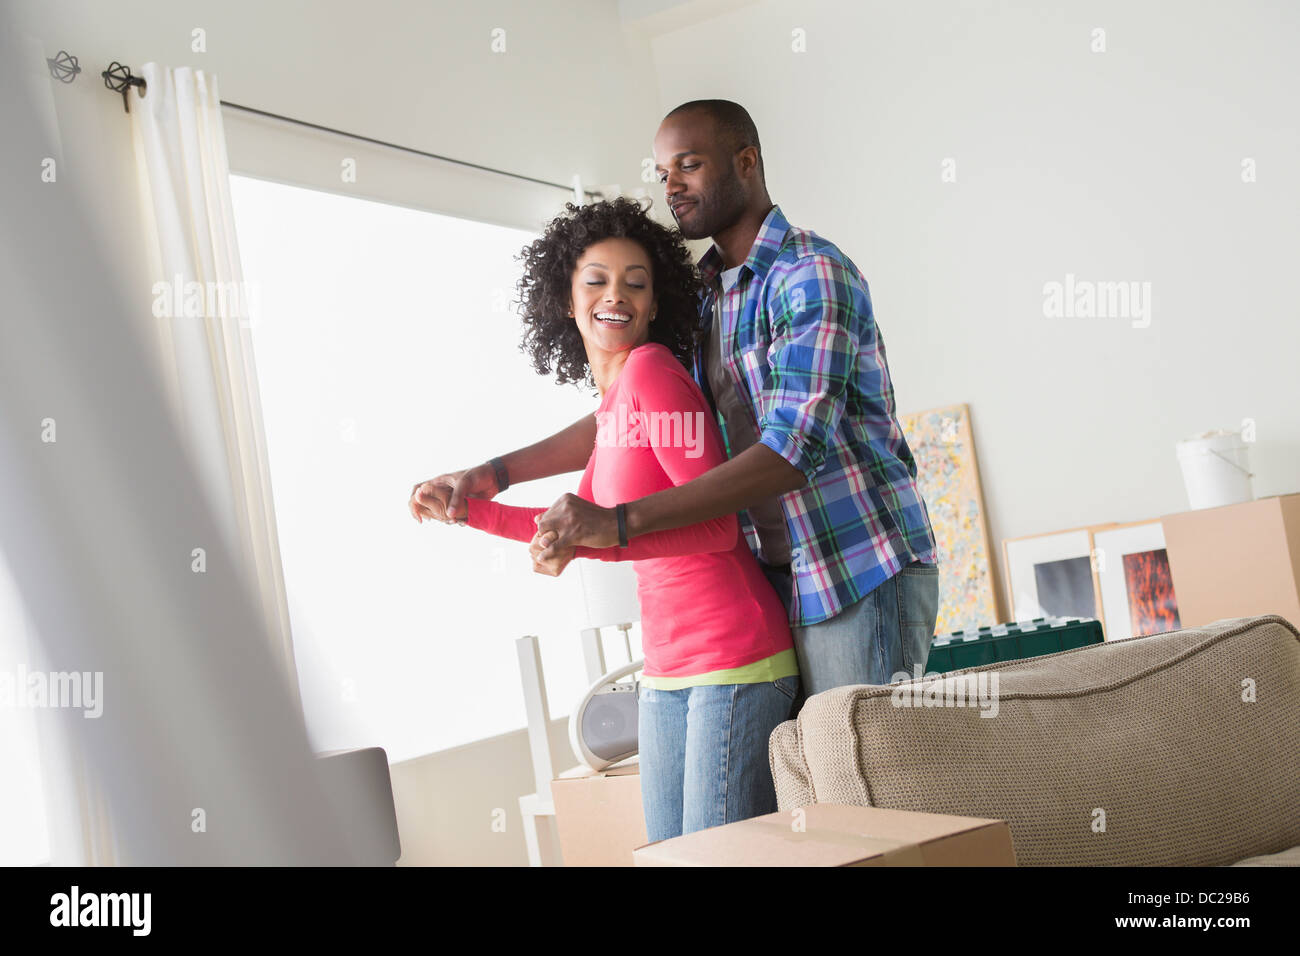 Young couple dancing in new home Photo Stock